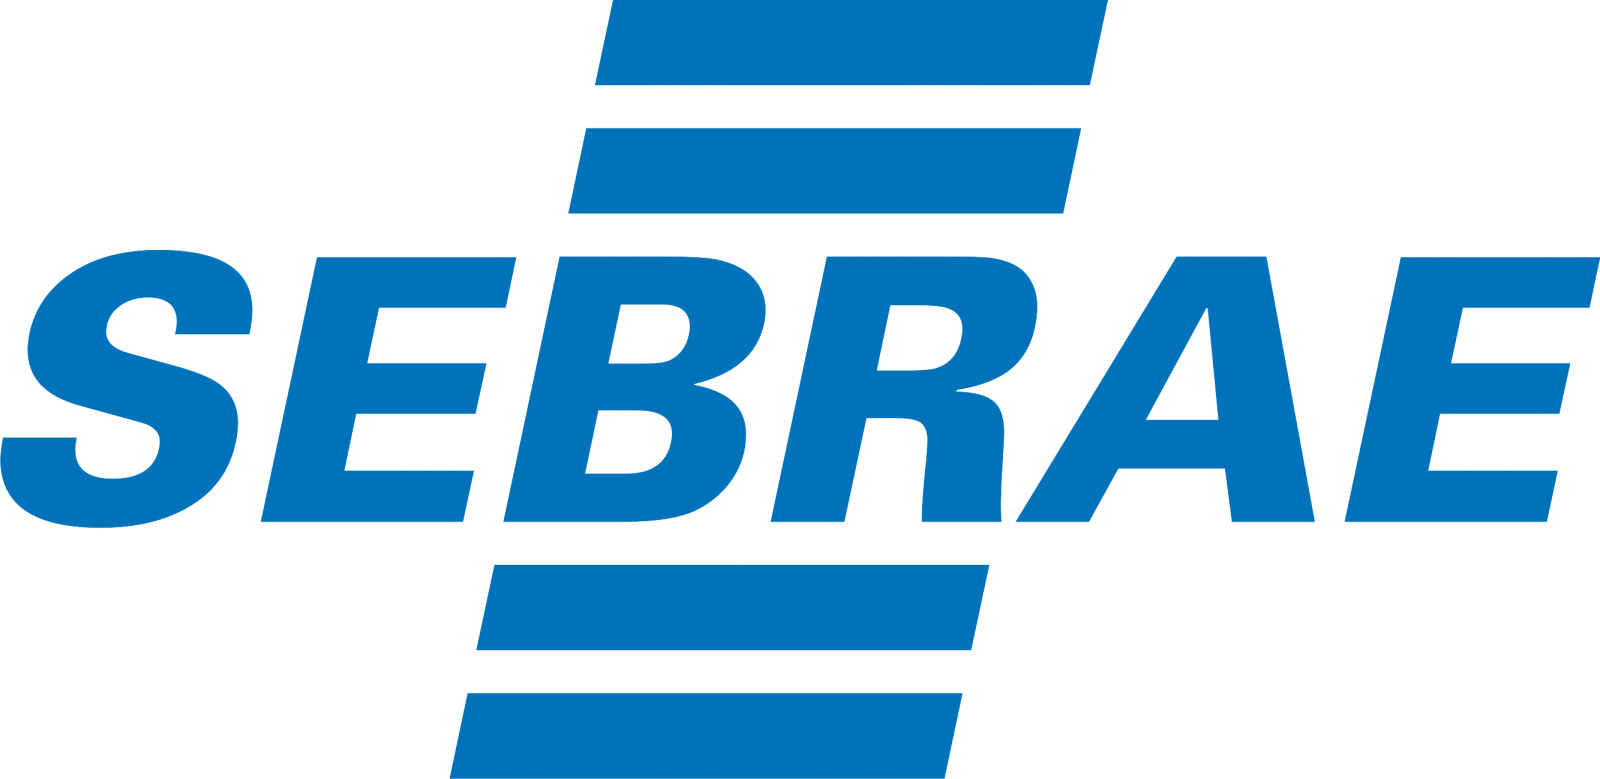 logotipo do Sebrae